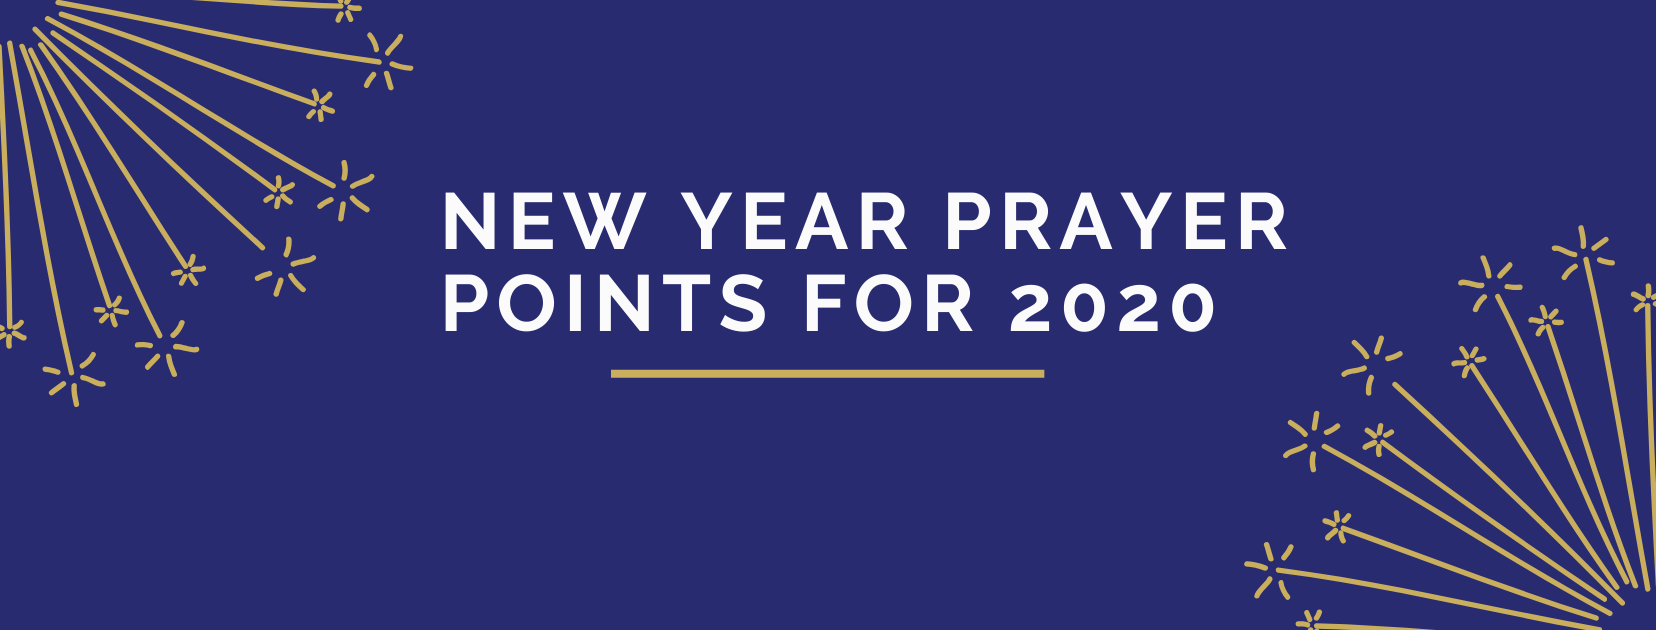 30 Prayer Points For New year 2020 New years prayer